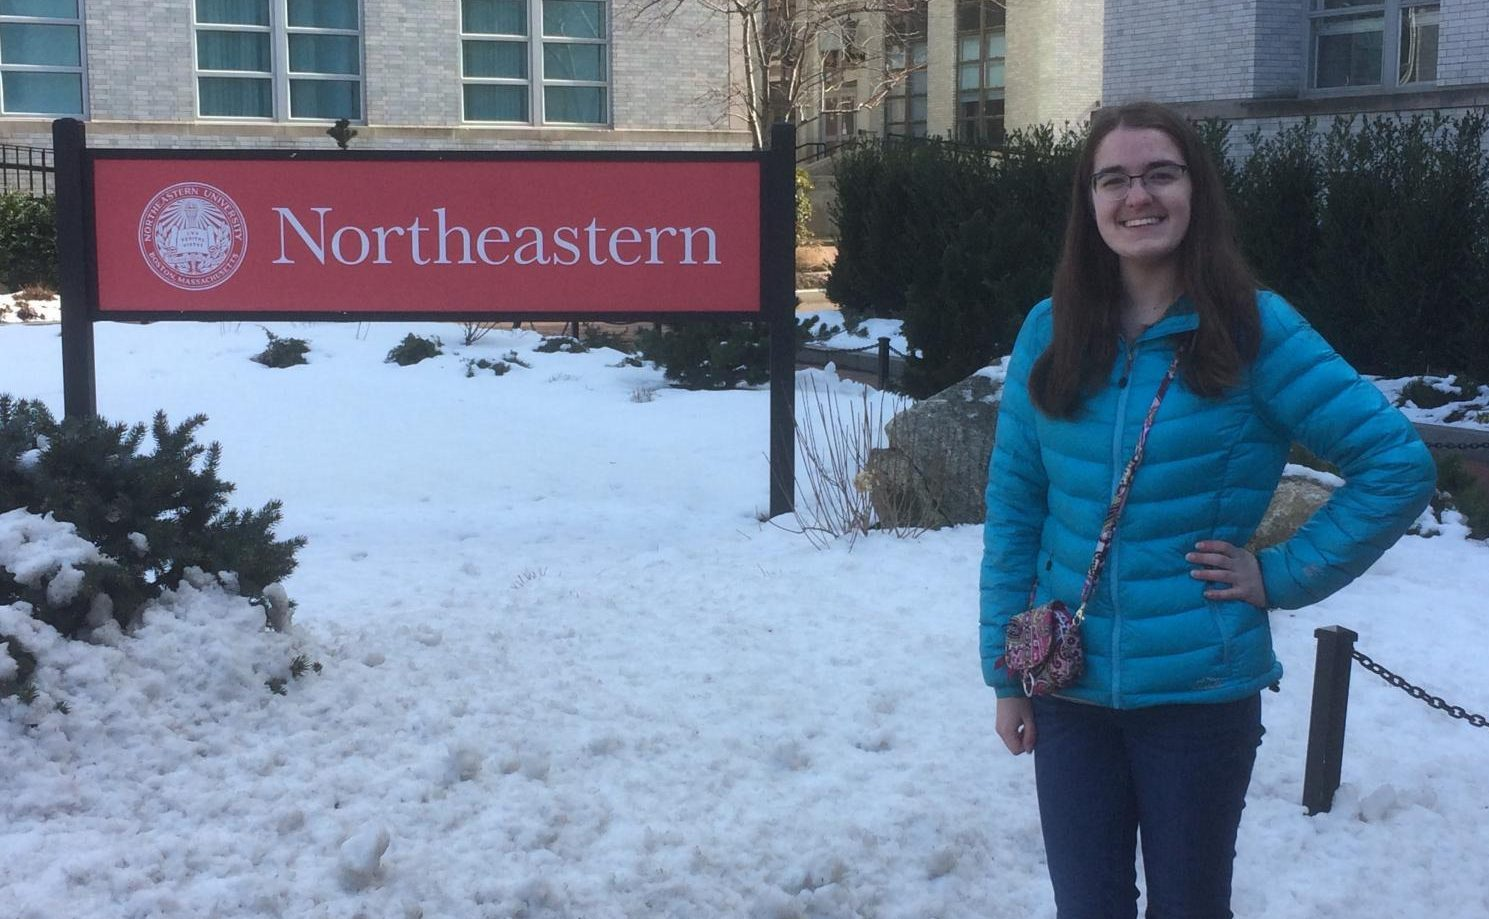 Senior Allison MacLeod, who is the editor-in-chief for Abington's school newspaper, visited Northeastern University on her first college tour in January 2018. She has visited seven colleges so far and has collected her tips for successful visits.